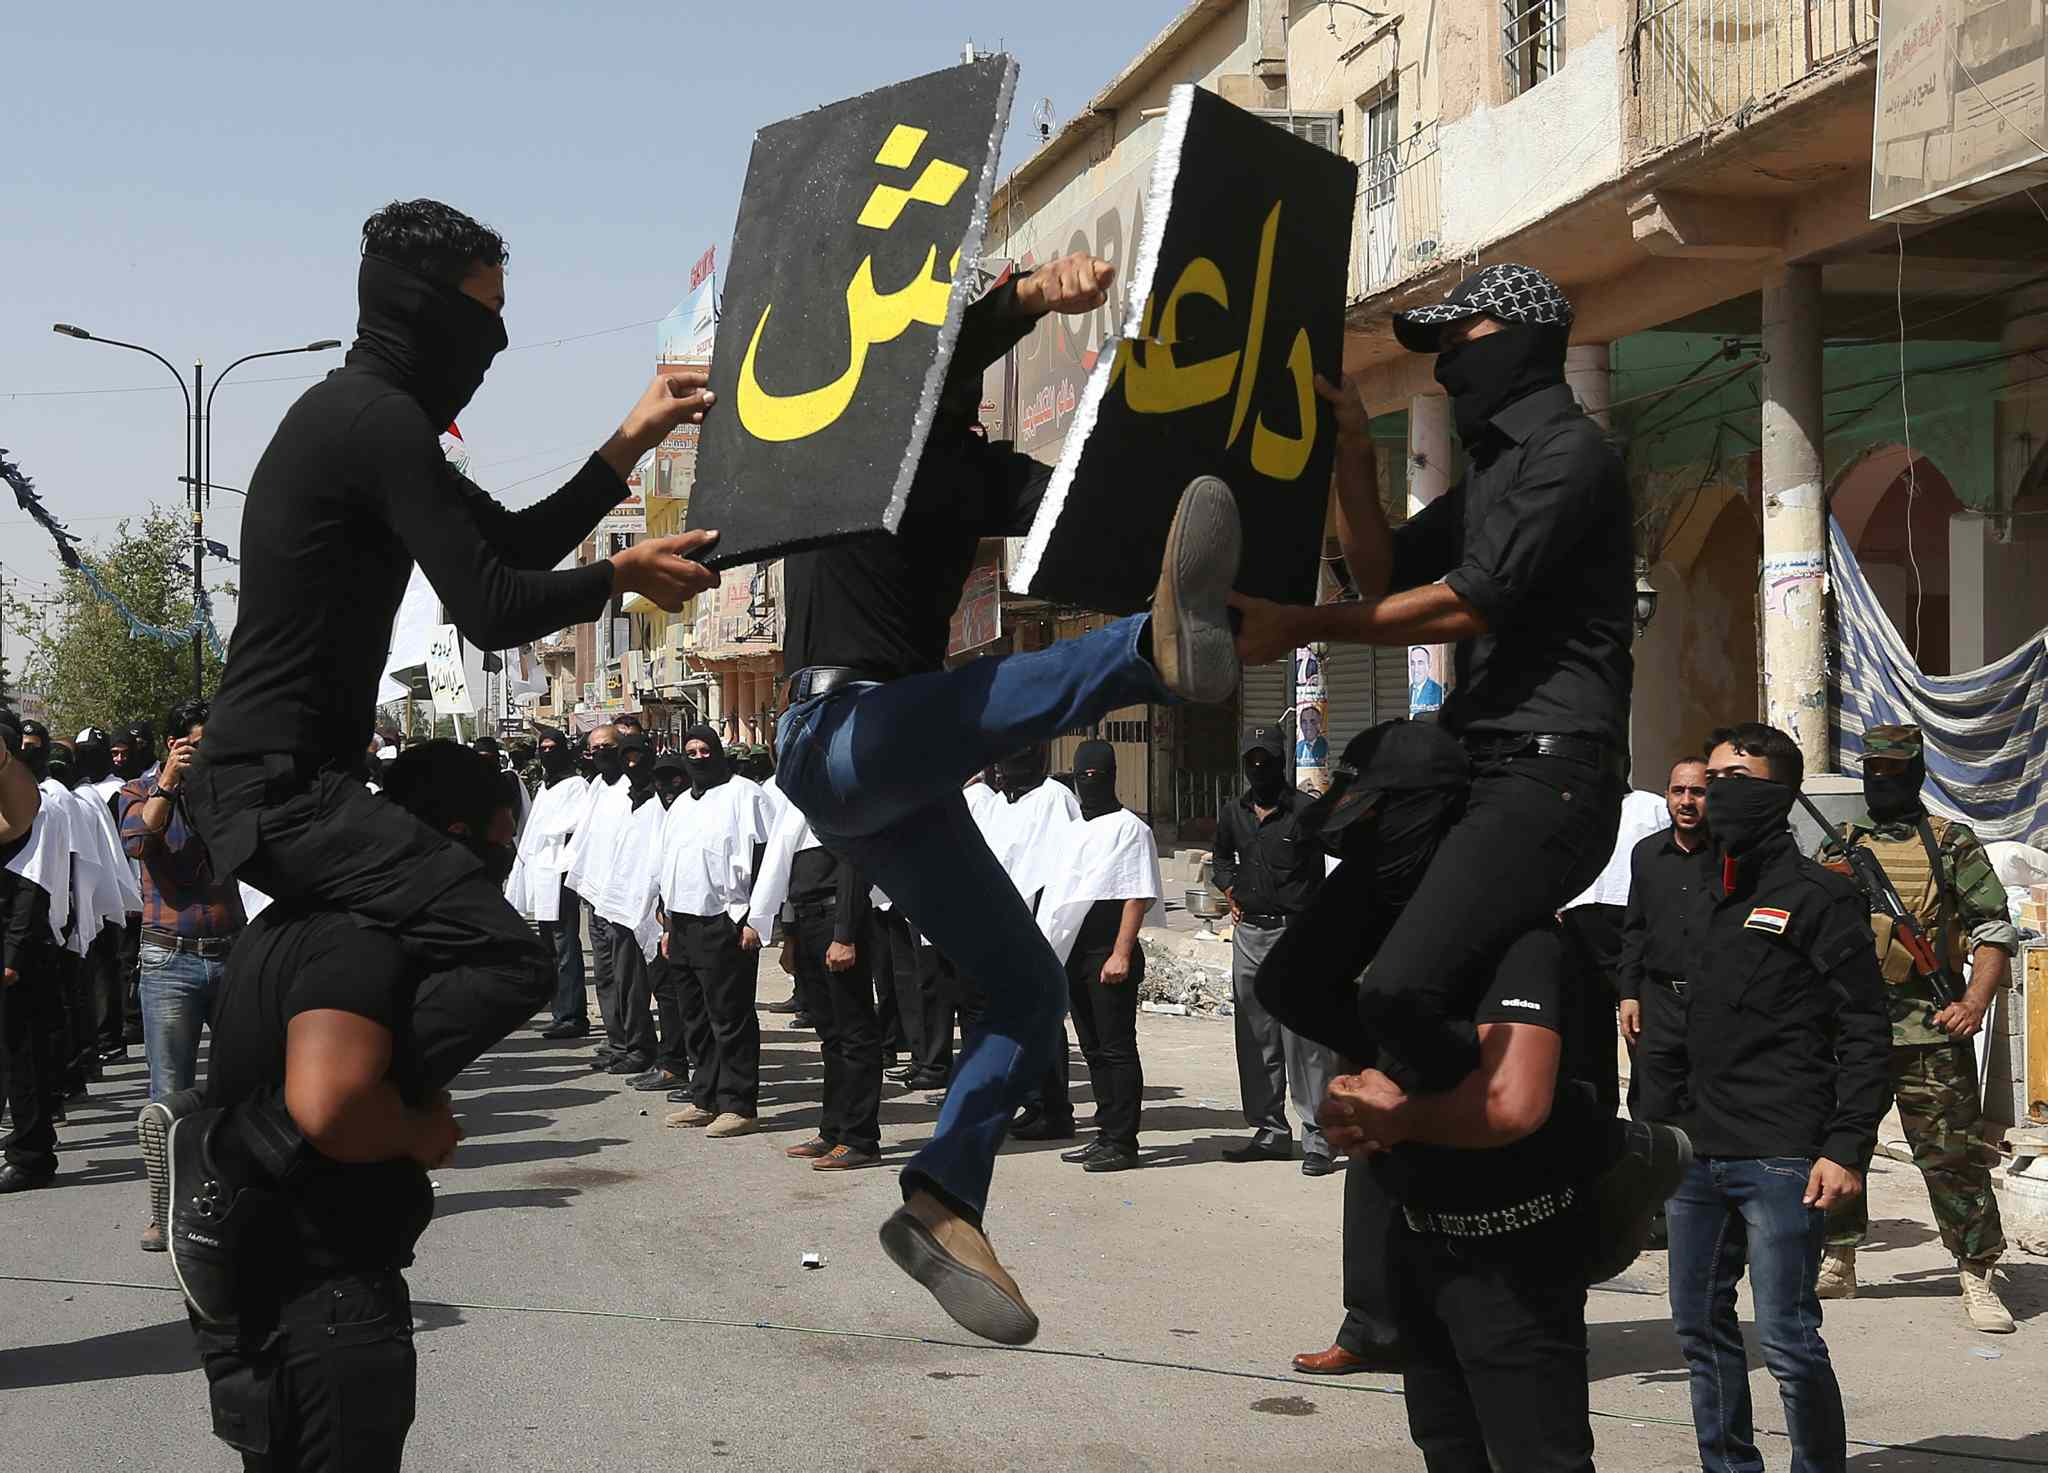 An Iraqi Shiite militiaman, a follower of Shiite cleric Muqtada al-Sadr, jumps to break a placard with the name of the Islamic State of Iraq and the Levant (ISIL) during a parade, in the northern oil rich province of Kirkuk, Iraq, Saturday, June 21, 2014.